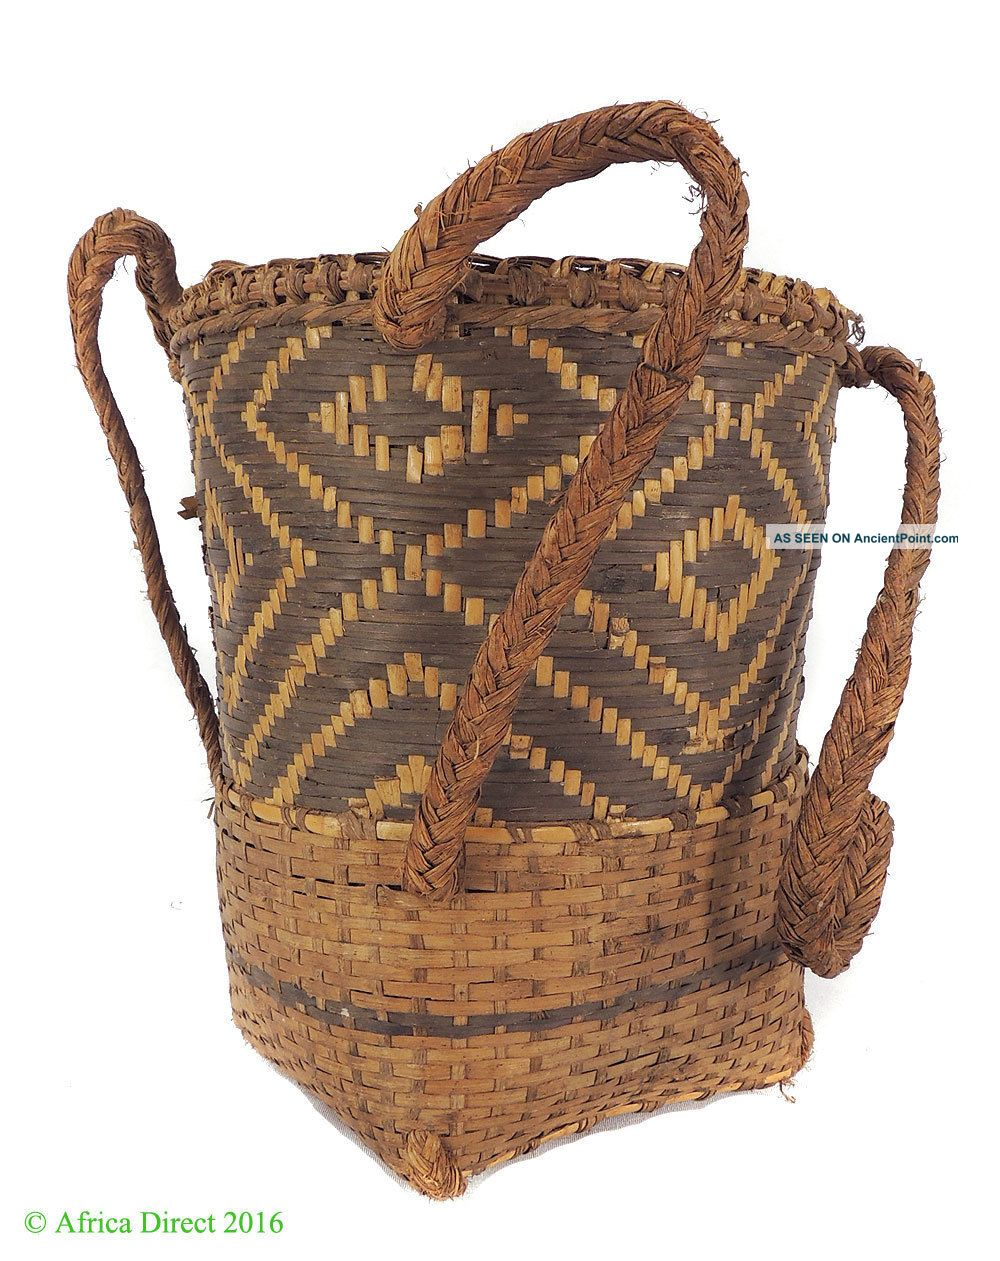 Kuba Basket Lidded With Strap Handwoven Congo African Art Was $99 Other African Antiques photo